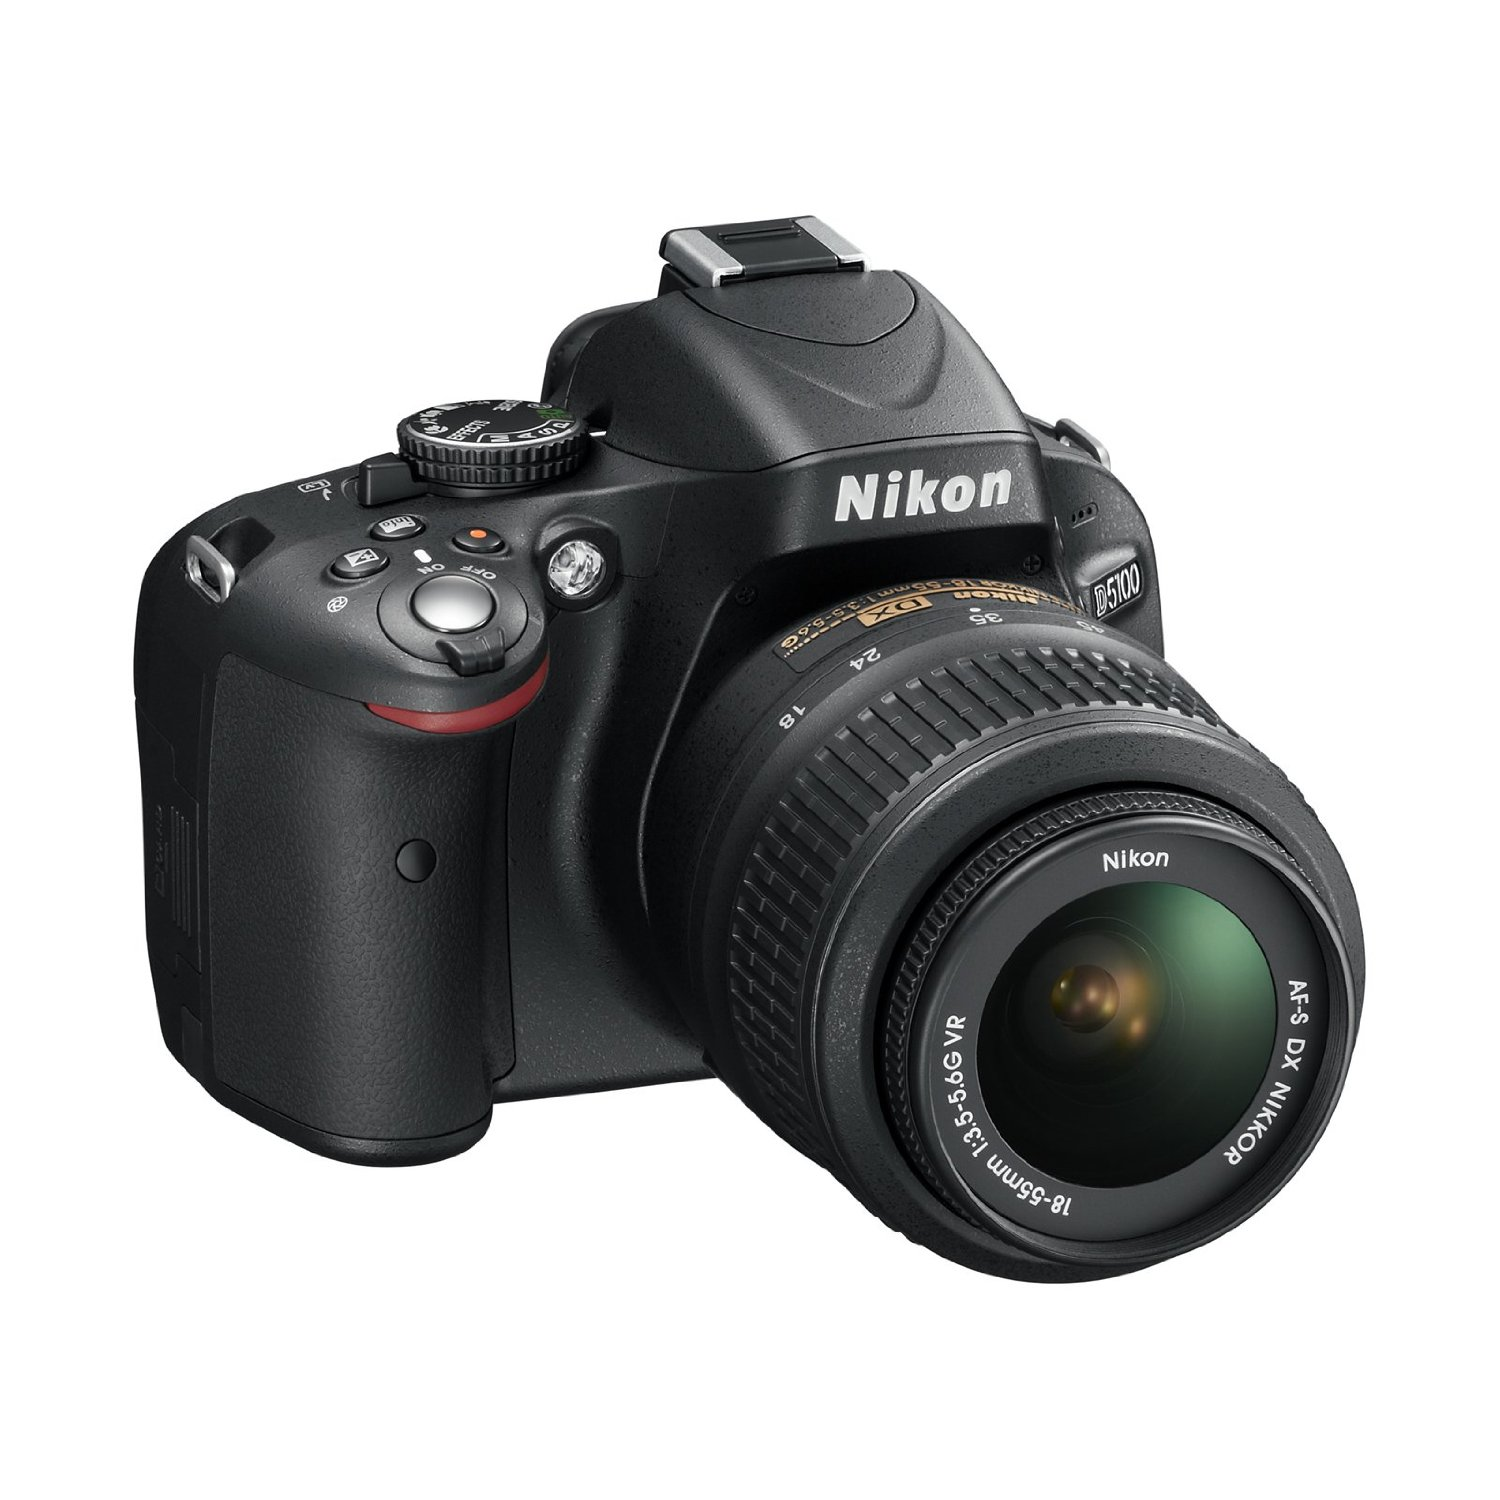 Review of Nikon D5100 16.2MP CMOS Digital SLR Camera with 18 ...